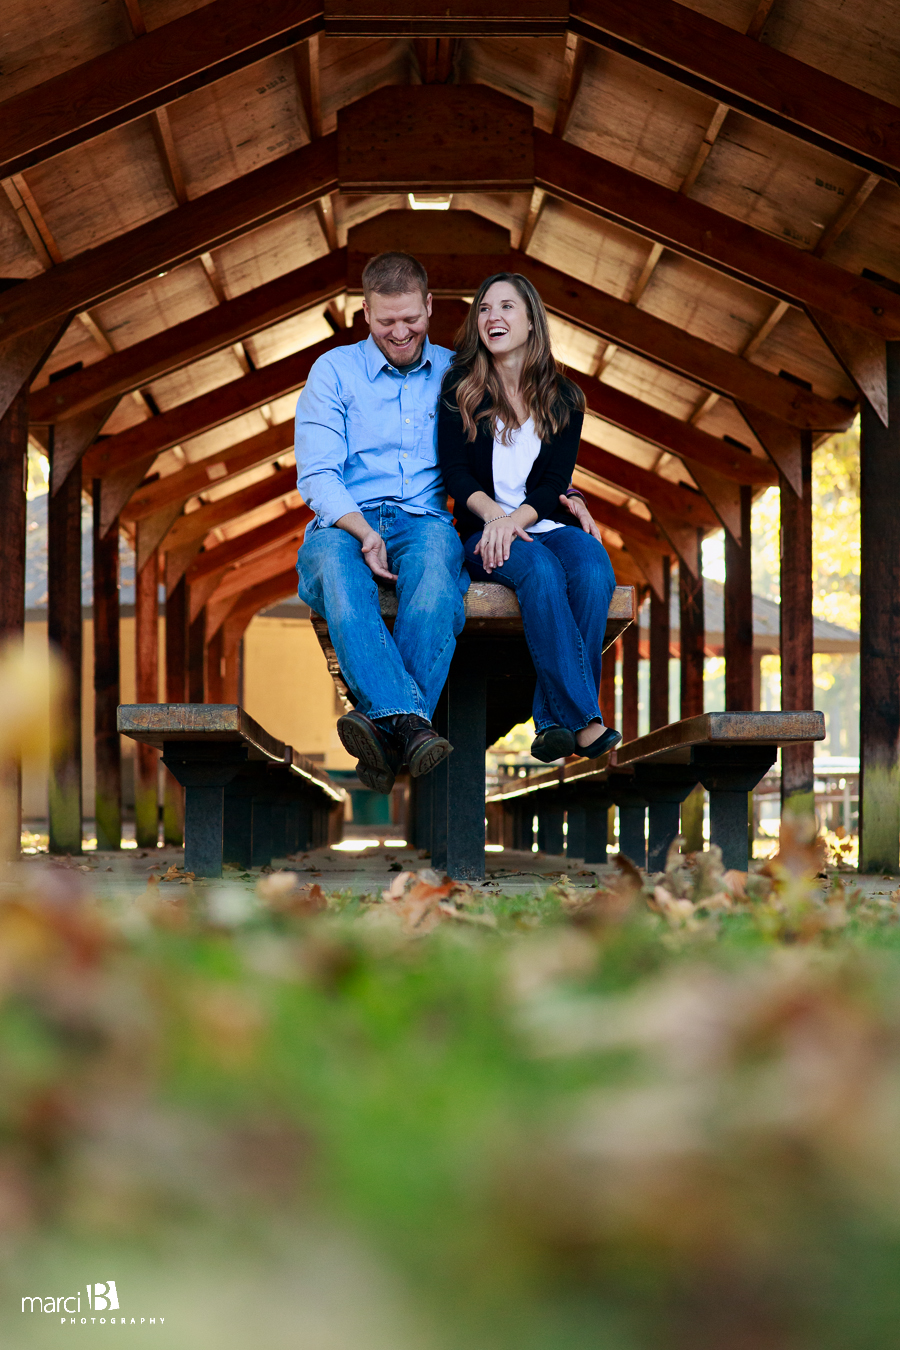 Corvallis, Oregon Engagement Photography - Avery Park - Fall Colors